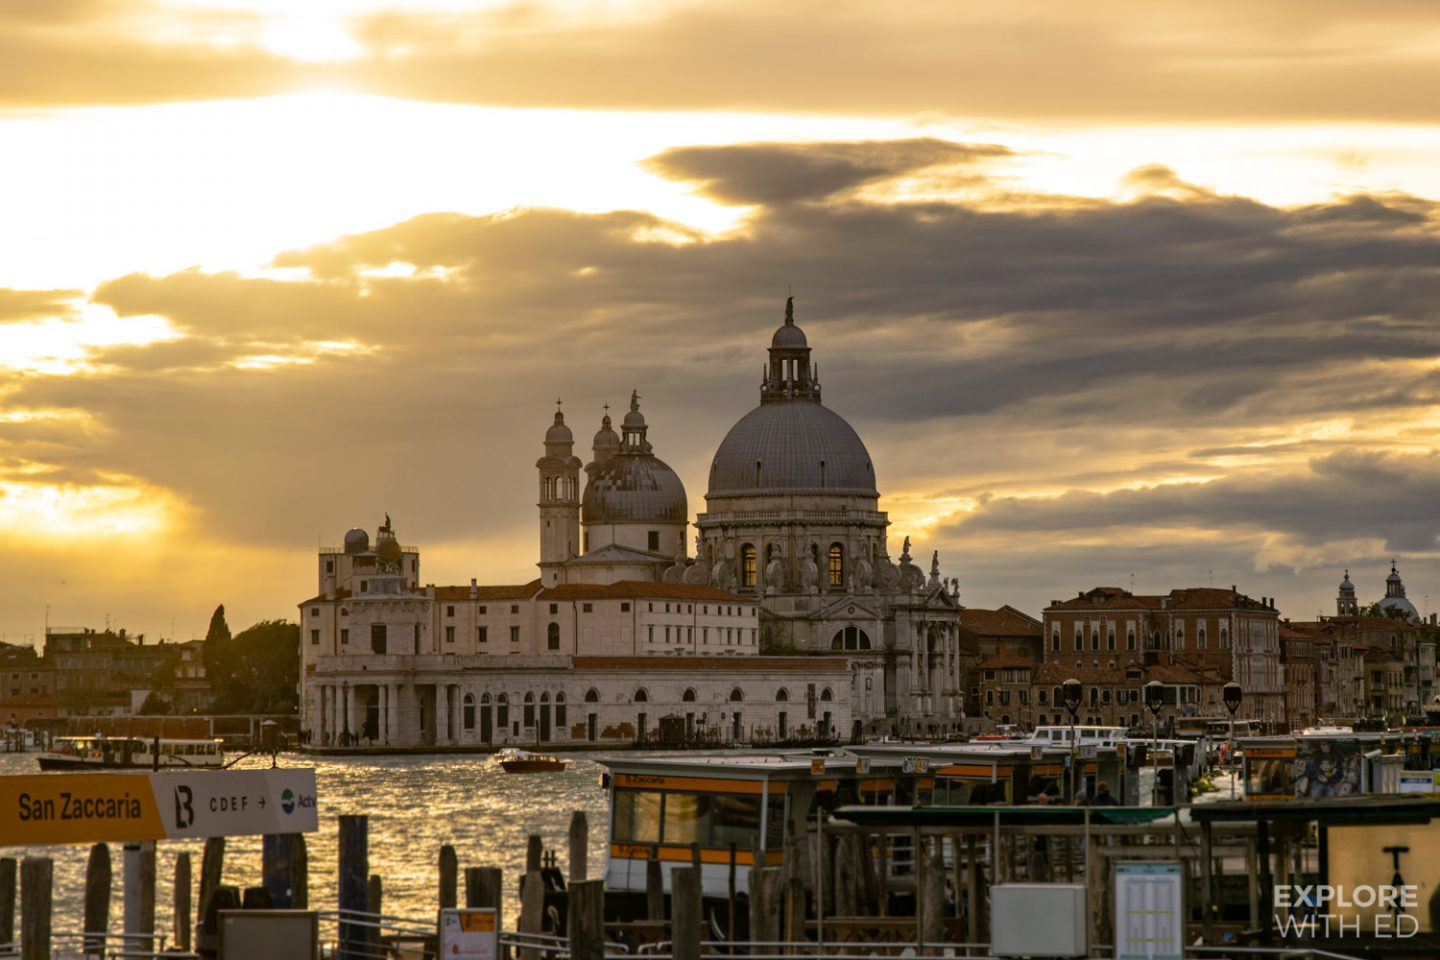 Golden hour in Venice, Italy